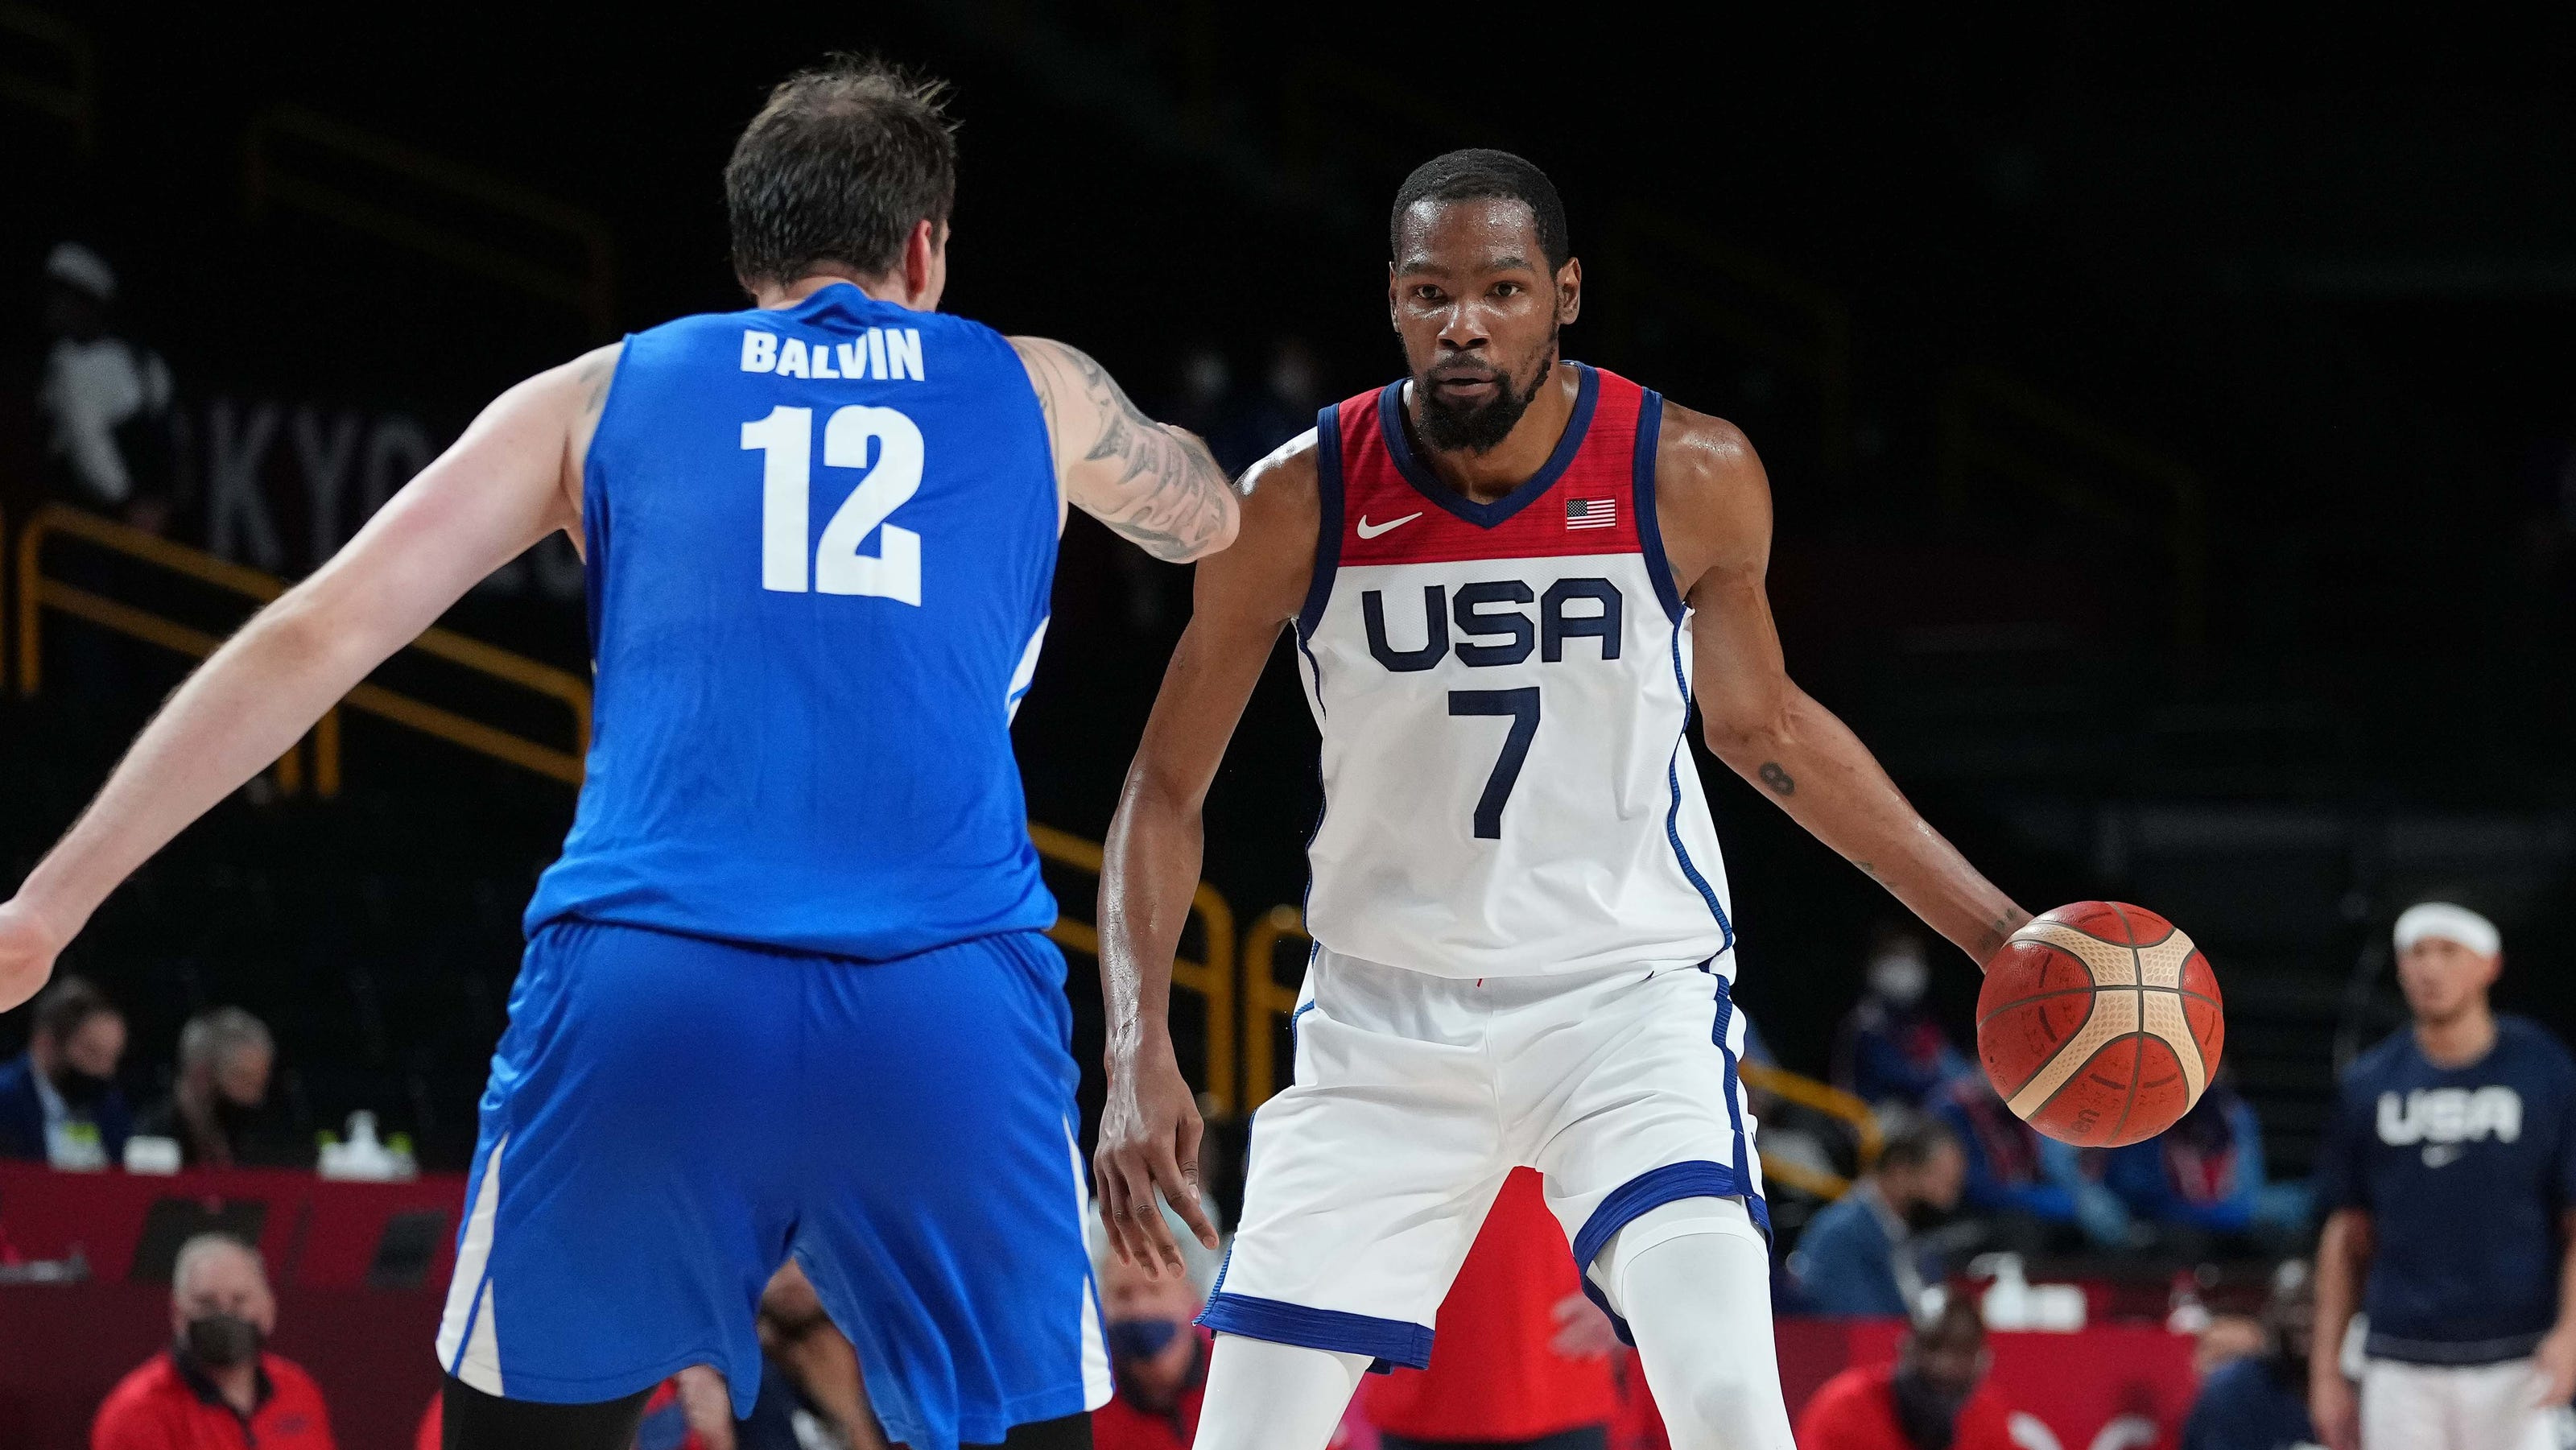 Kevin Durant sparks Team USA to win over Czech Republic, second place in group play at Tokyo Olympics